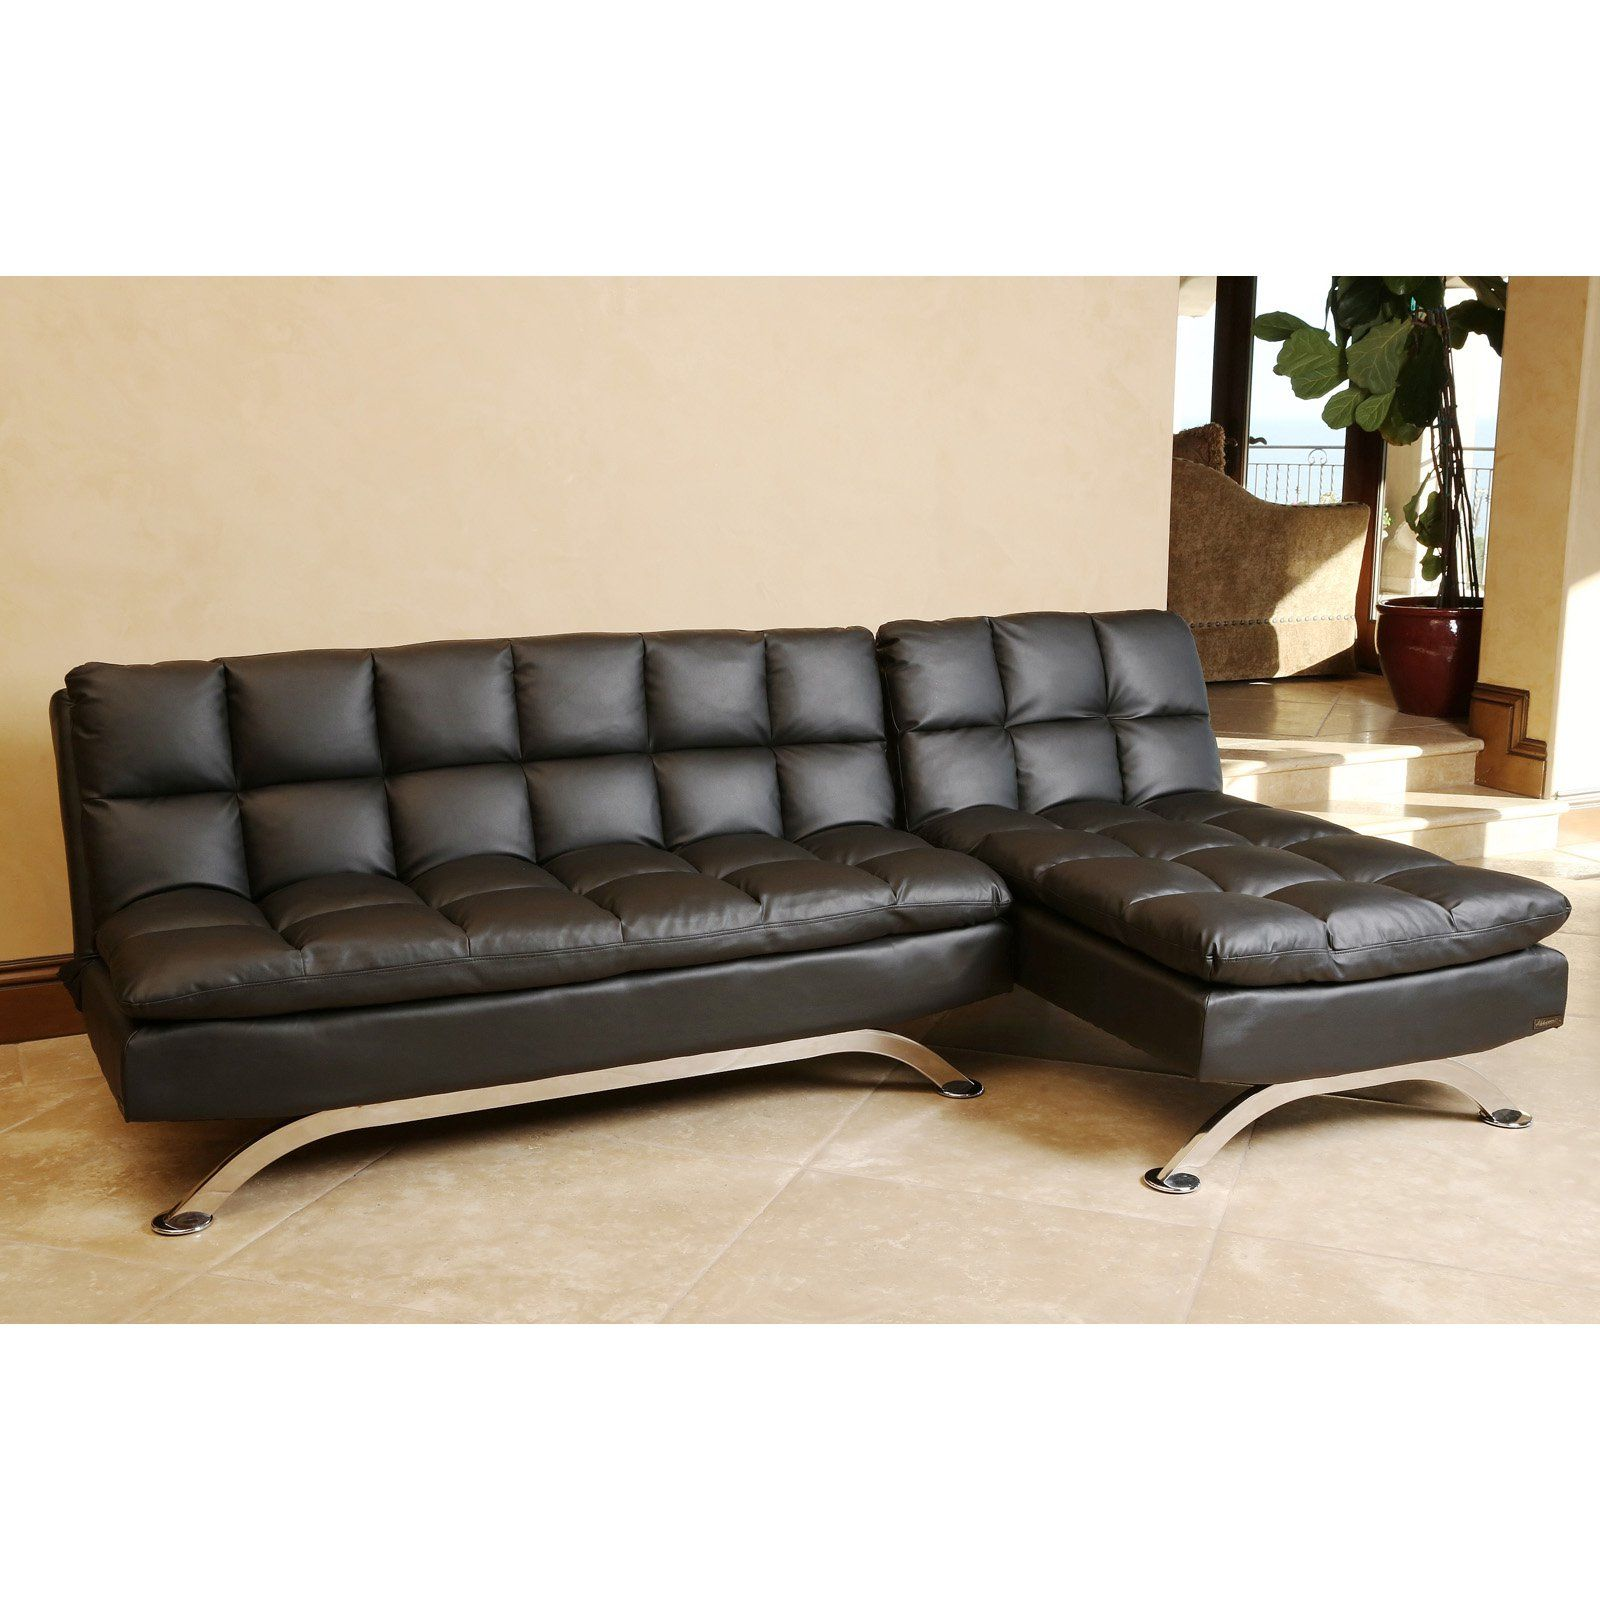 Abbyson Living Vienna Black Leather Sofa Bed And Chaise Sectional From Hayneedle Com Sofa Bed With Chaise Leather Sofa Bed Black Leather Sofa Bed